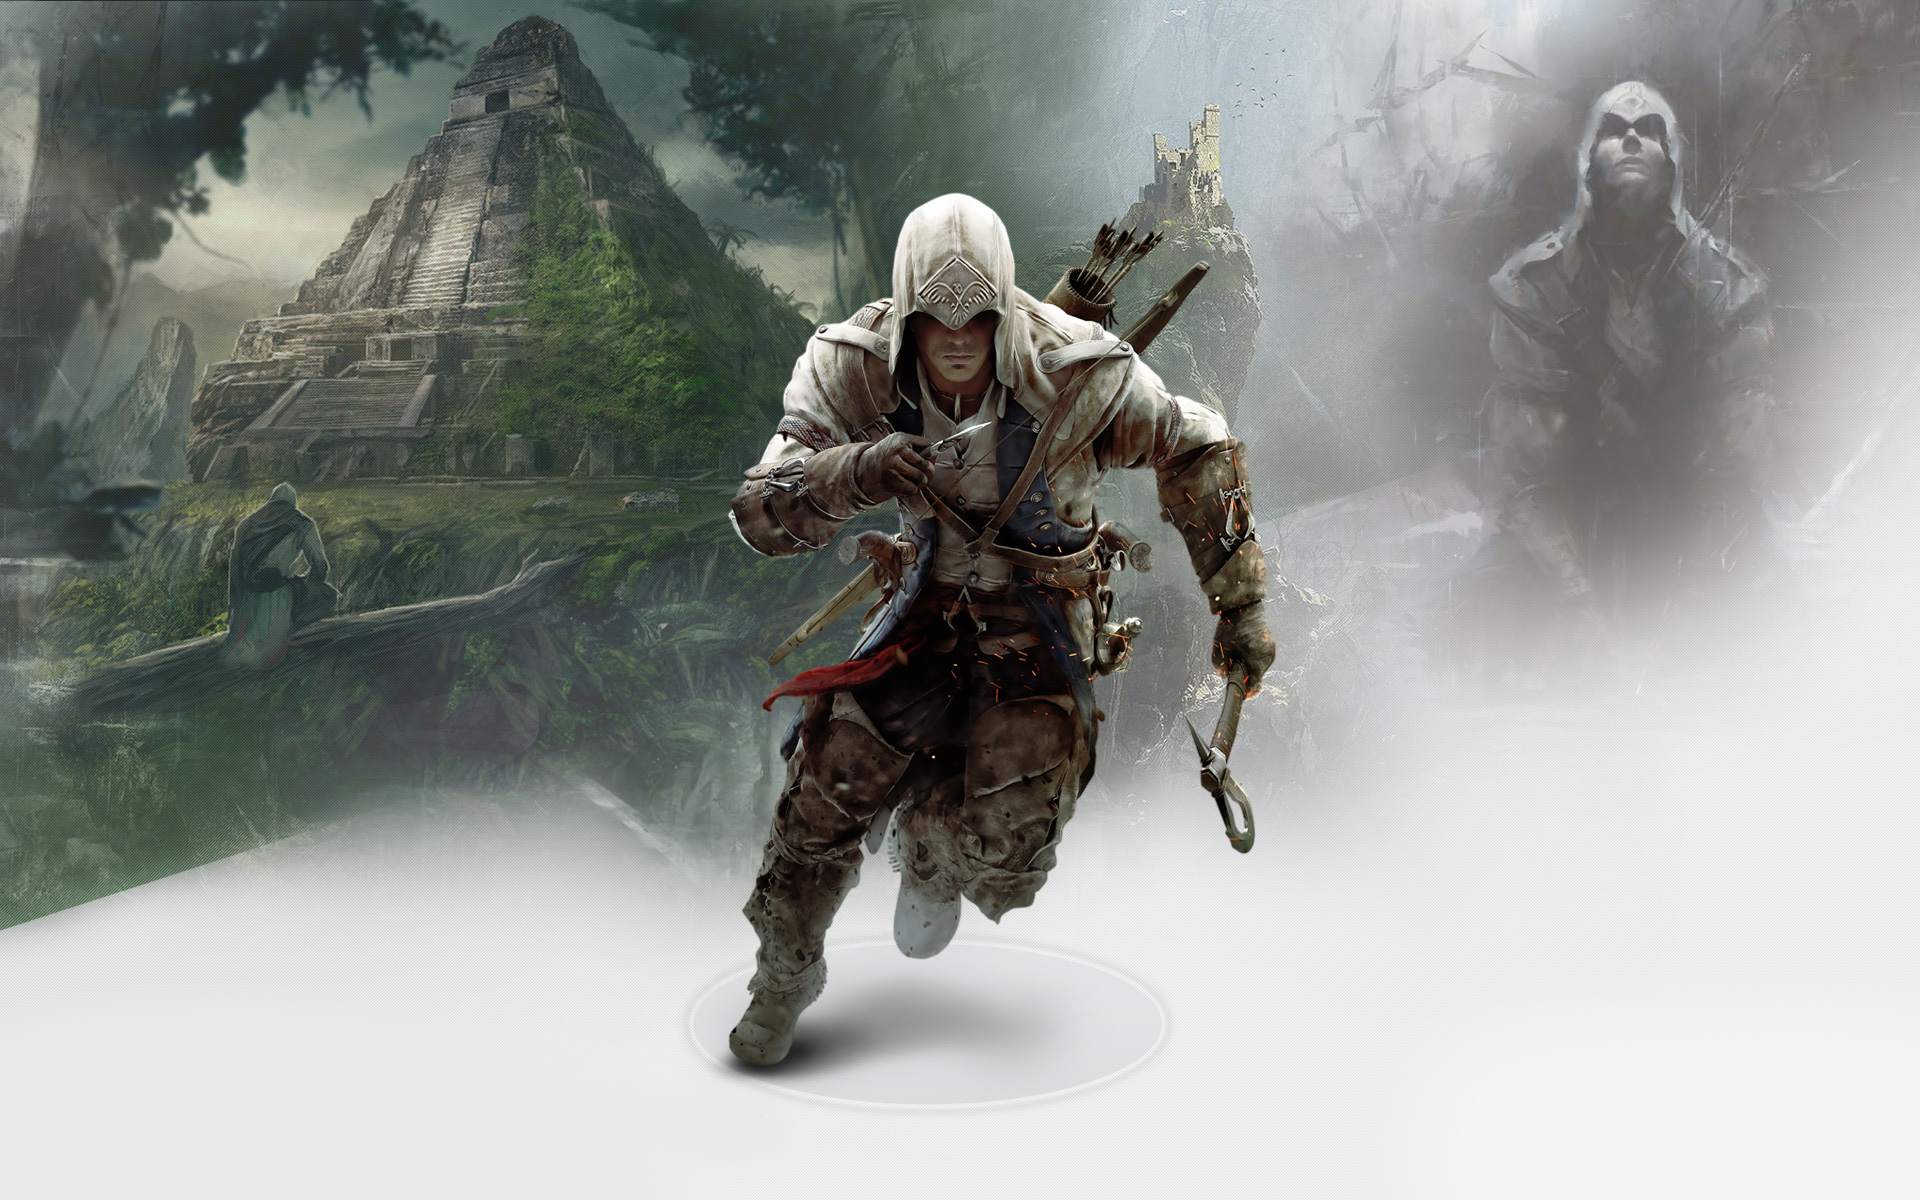 Free Download Connor In Assassins Creed 3 Wallpapers Hd Wallpapers